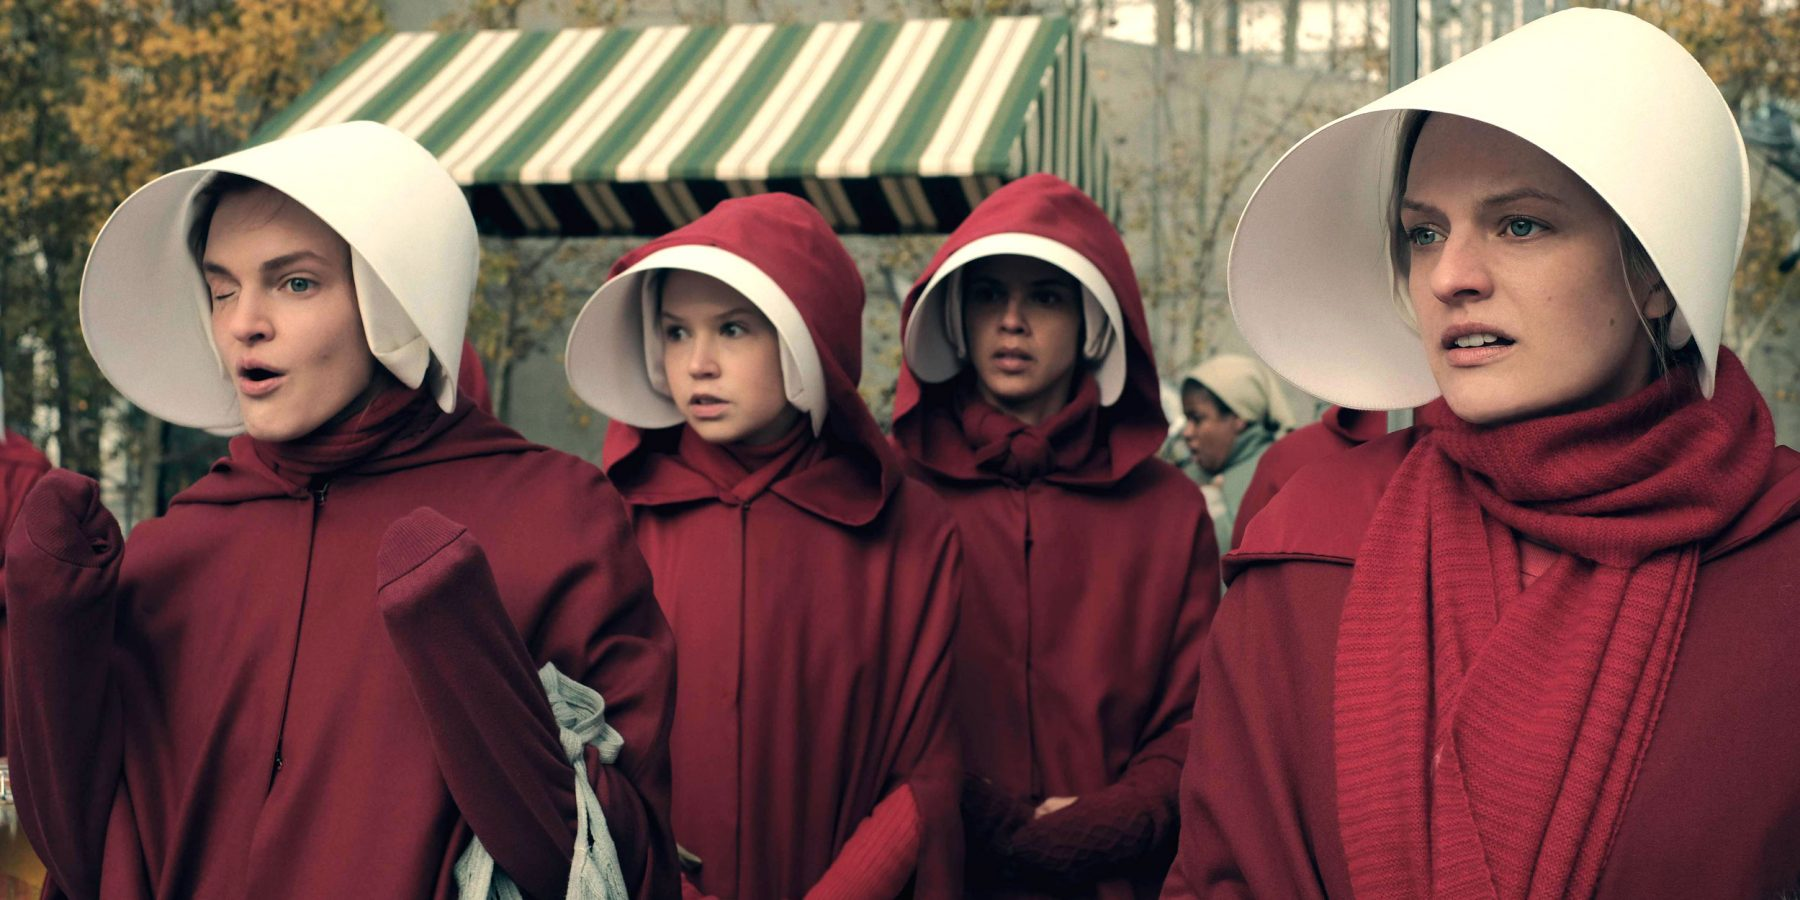 confederate hbo handmaid's tale